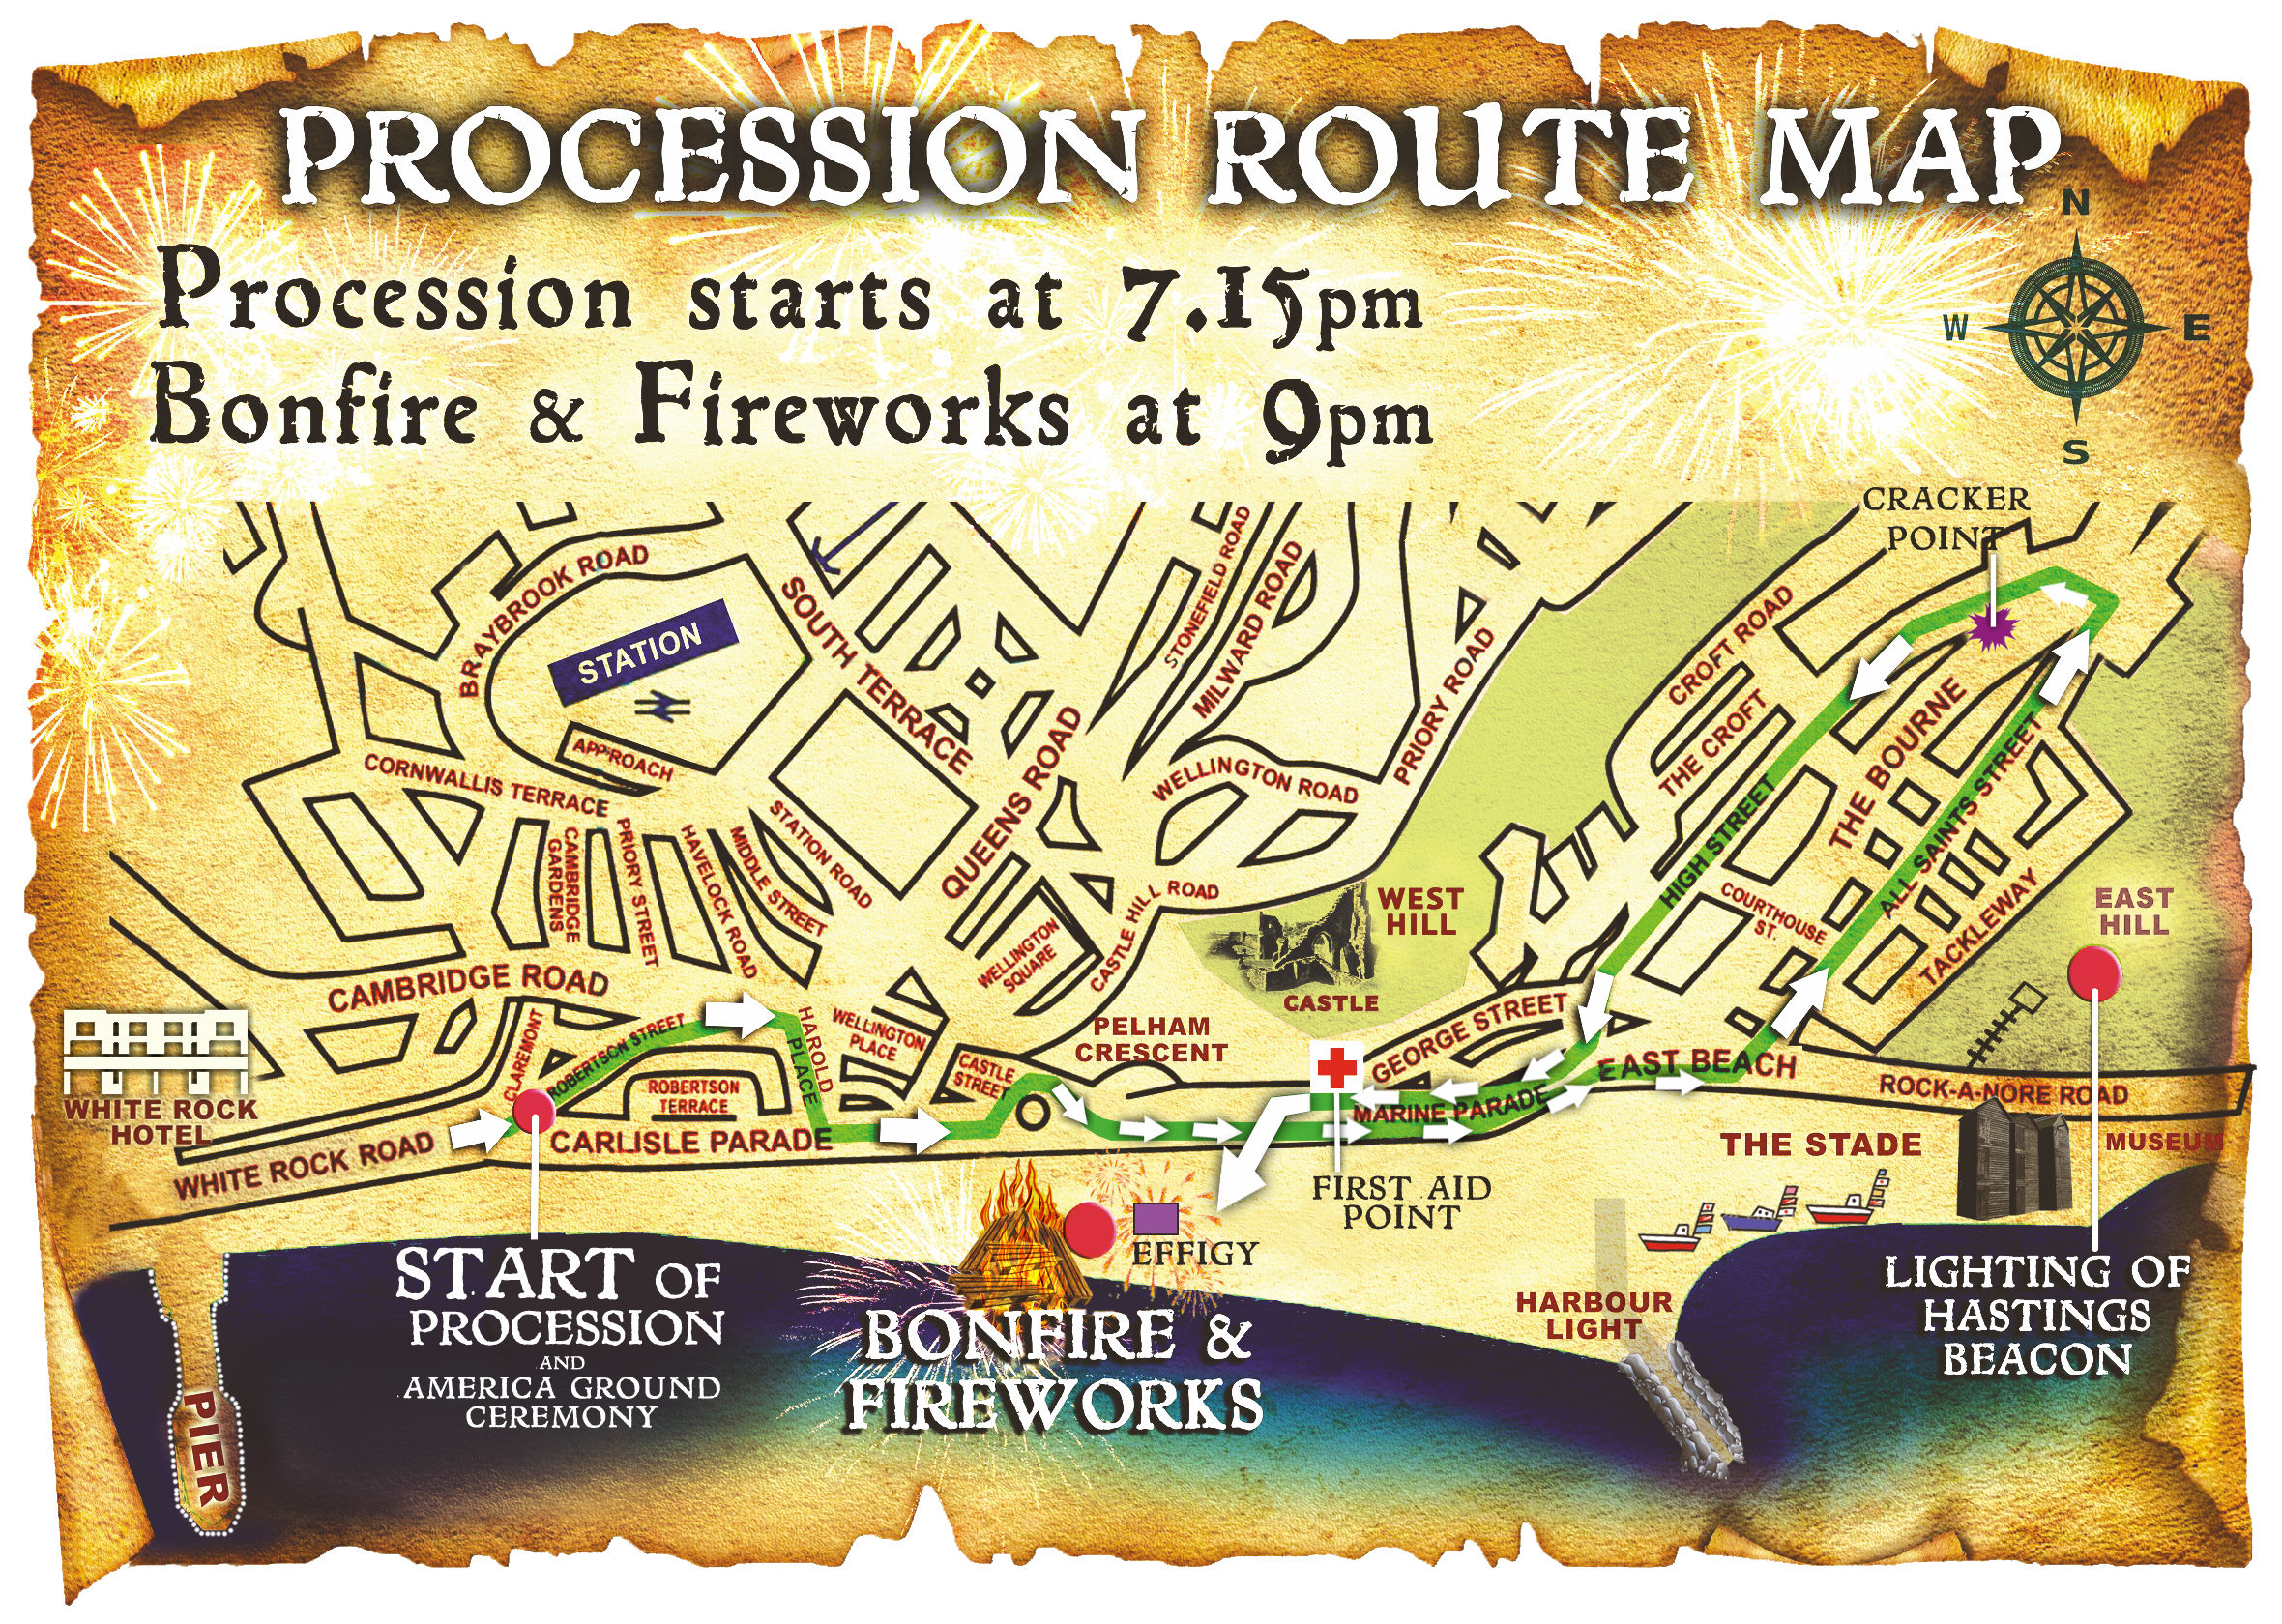 Route map for Hastings bonfire procession. Shows start point at white rock, going to the old town and back to pelham place